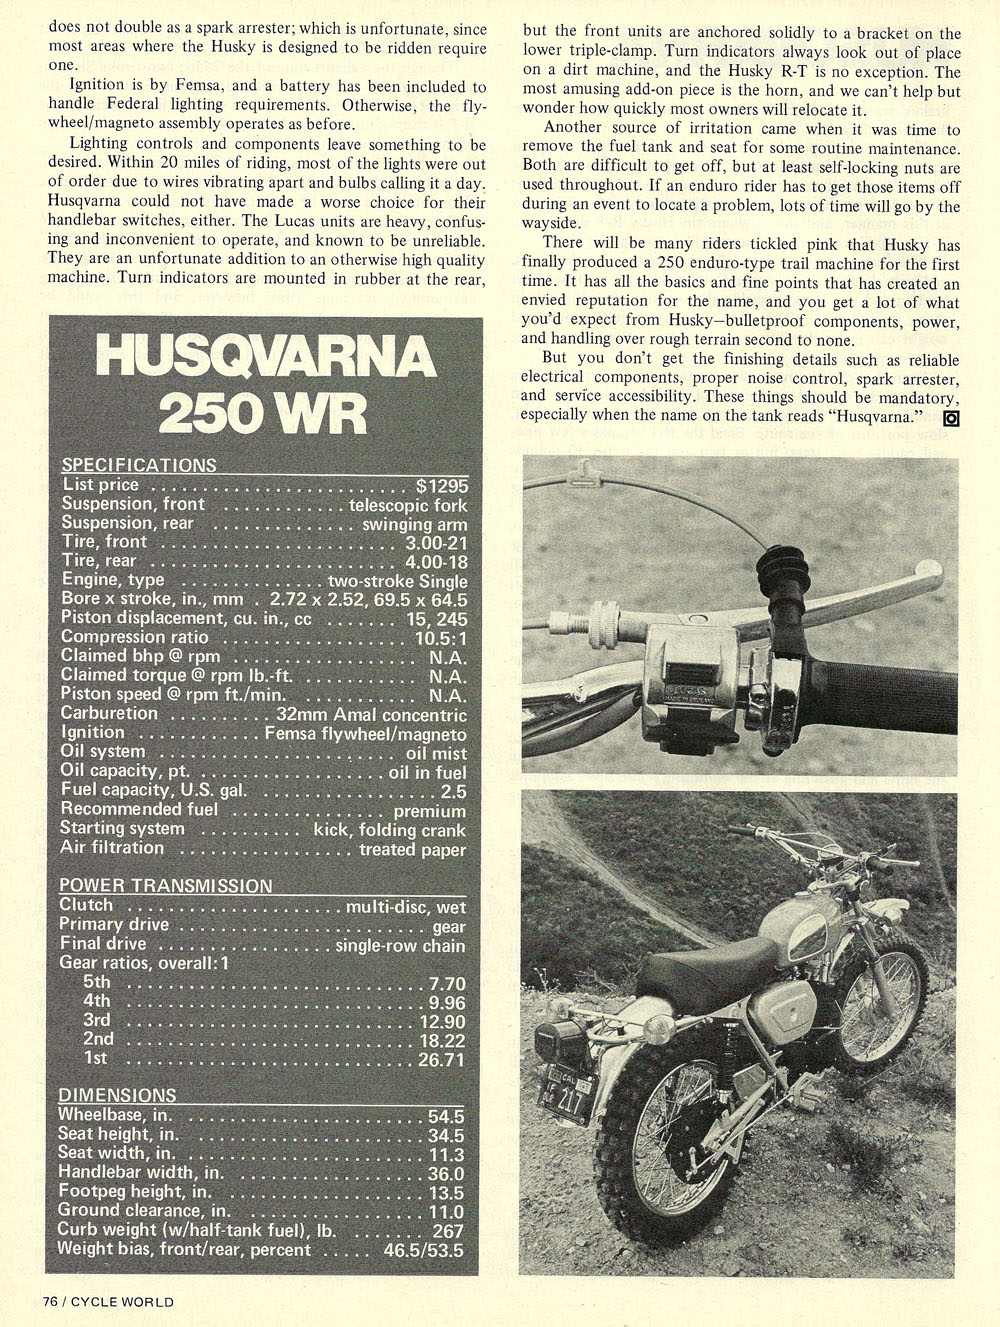 1973 Husqvarna 250 wr road test 05.jpg